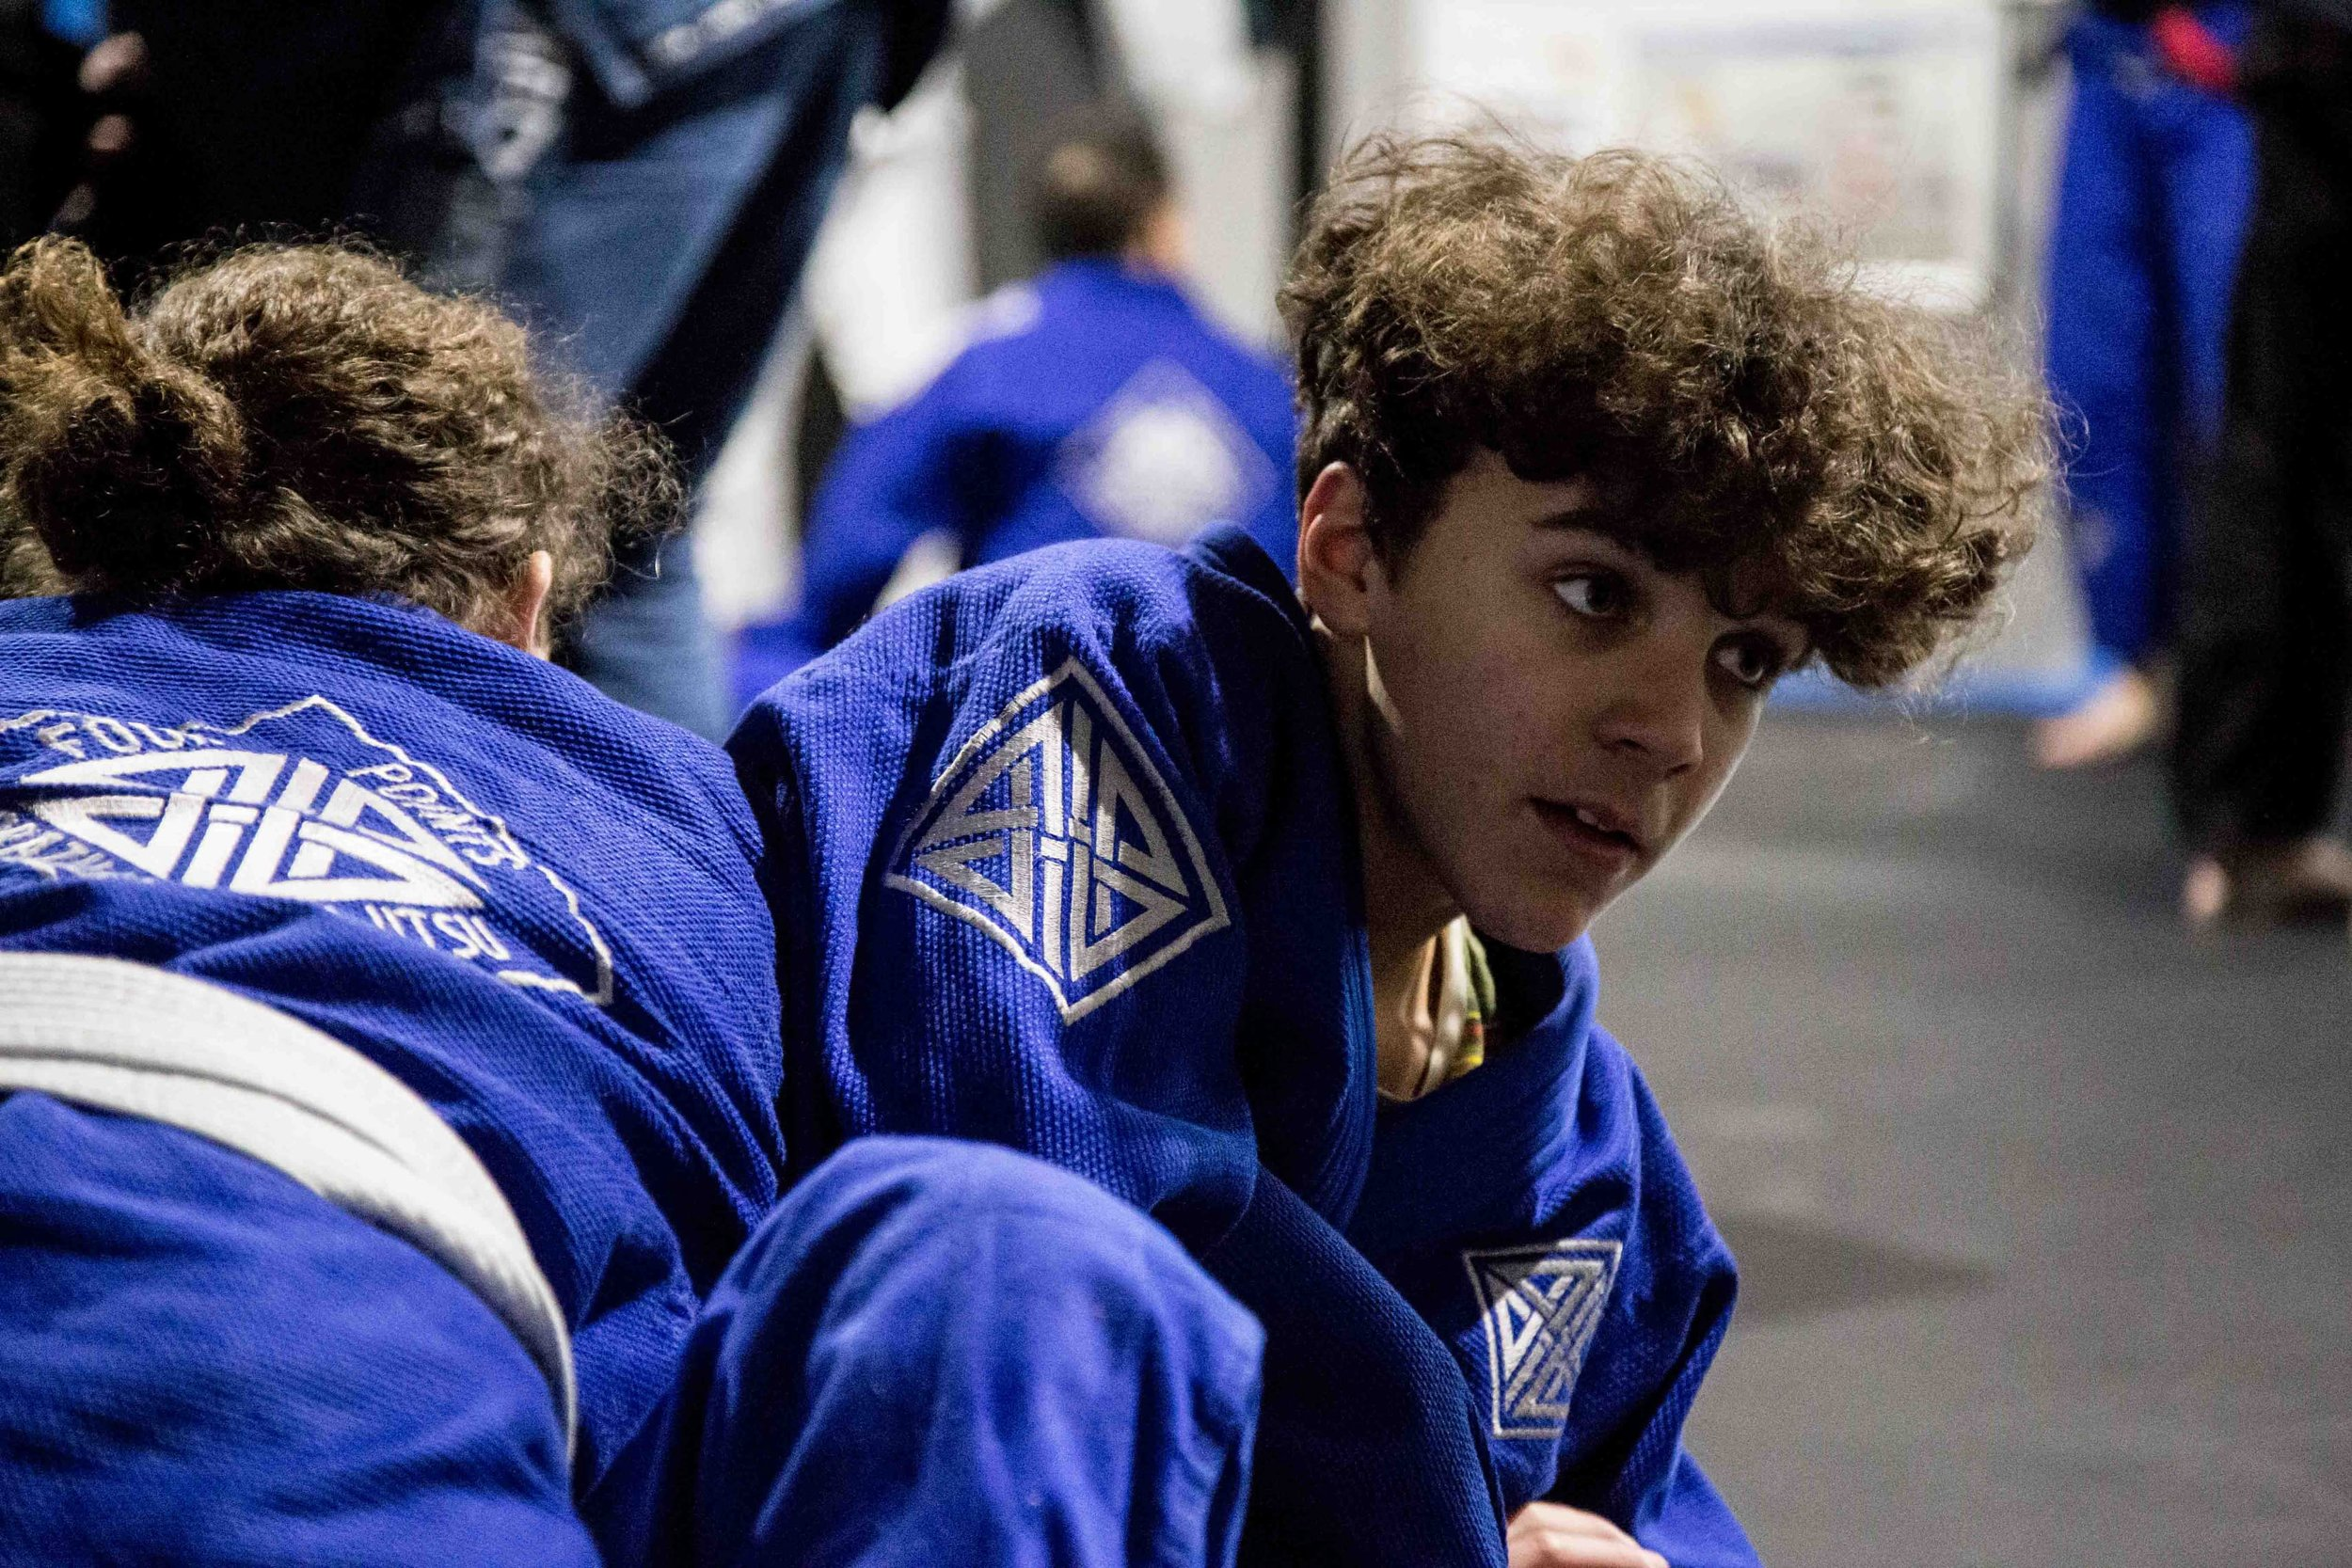 kids-teens-bjj-school-programs